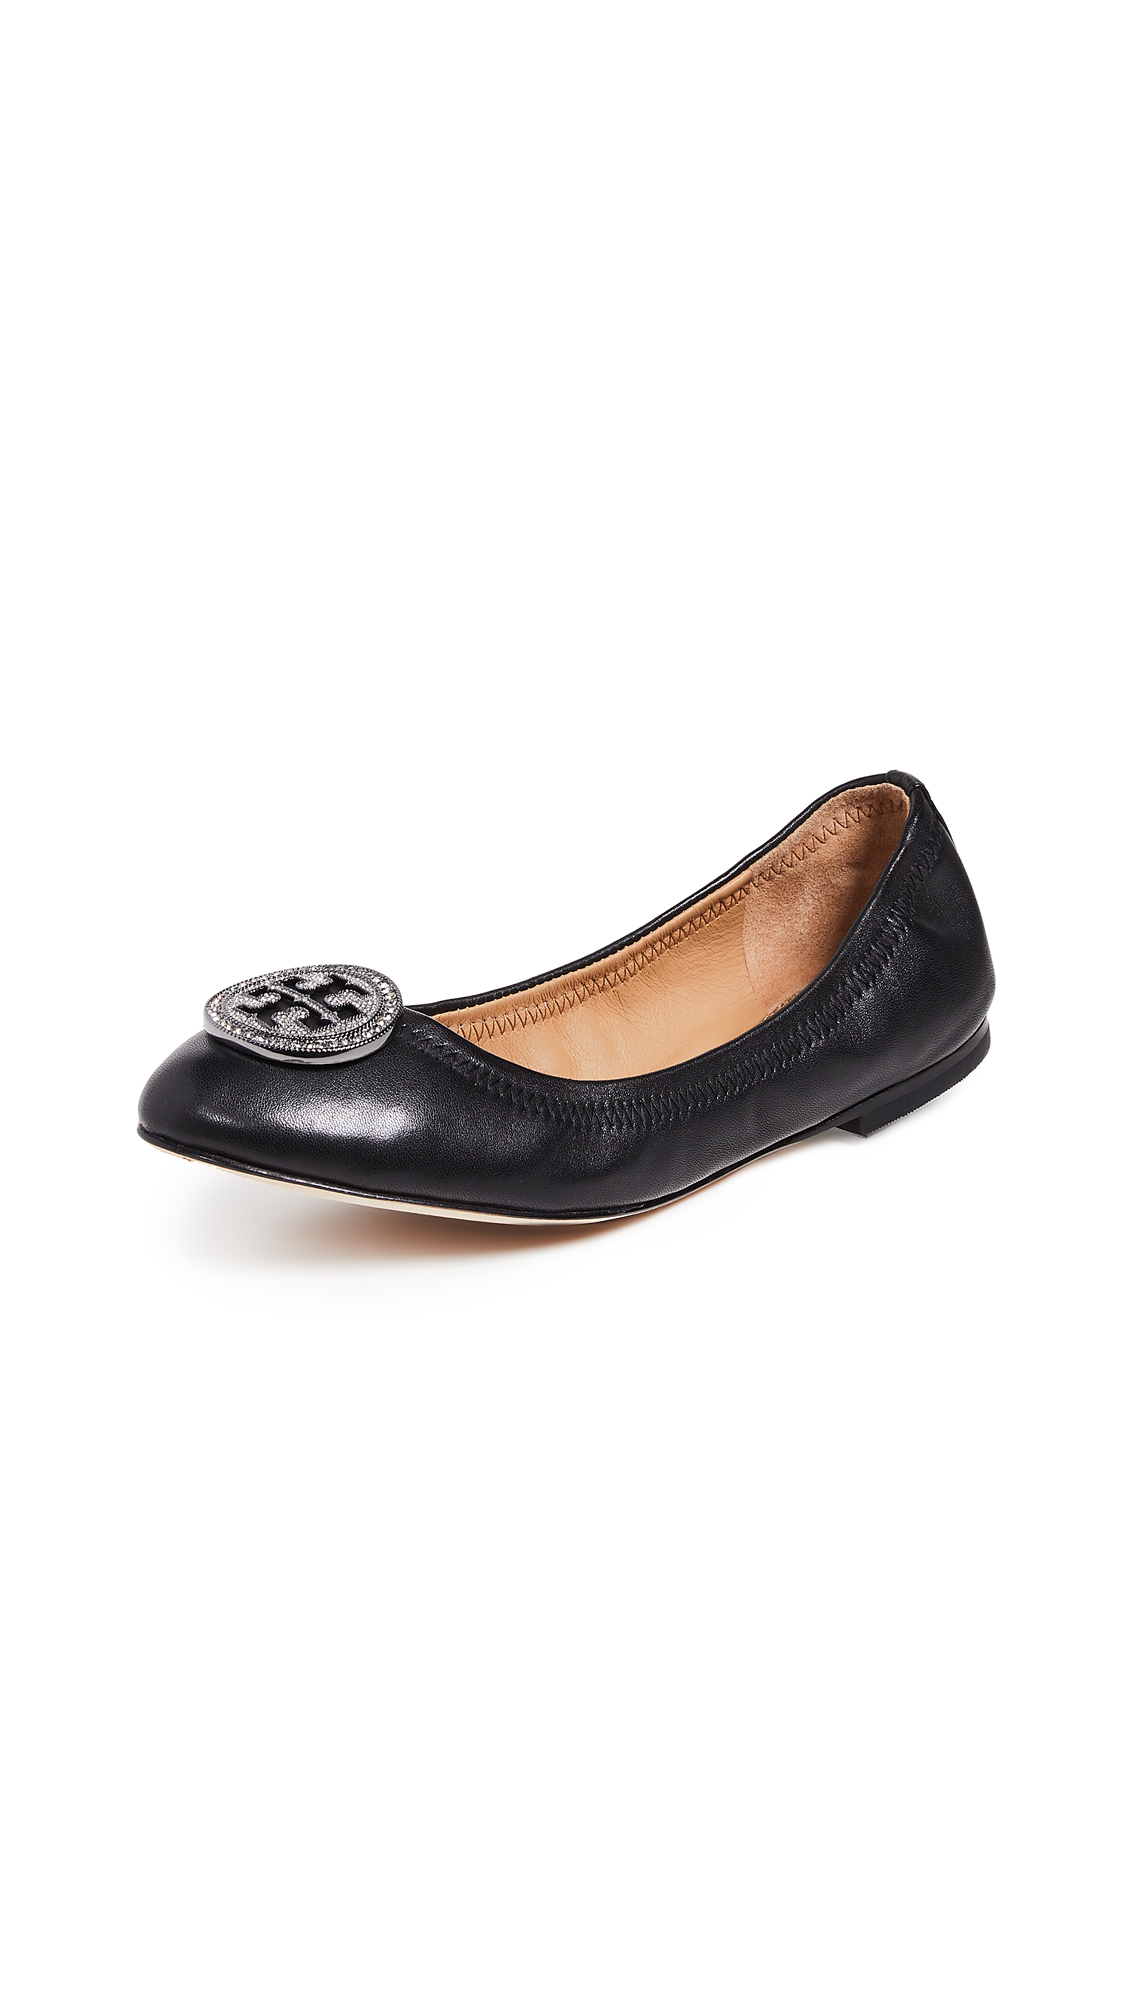 Tory Burch Liana Ballet Flats - Perfect Black/Gunmetal